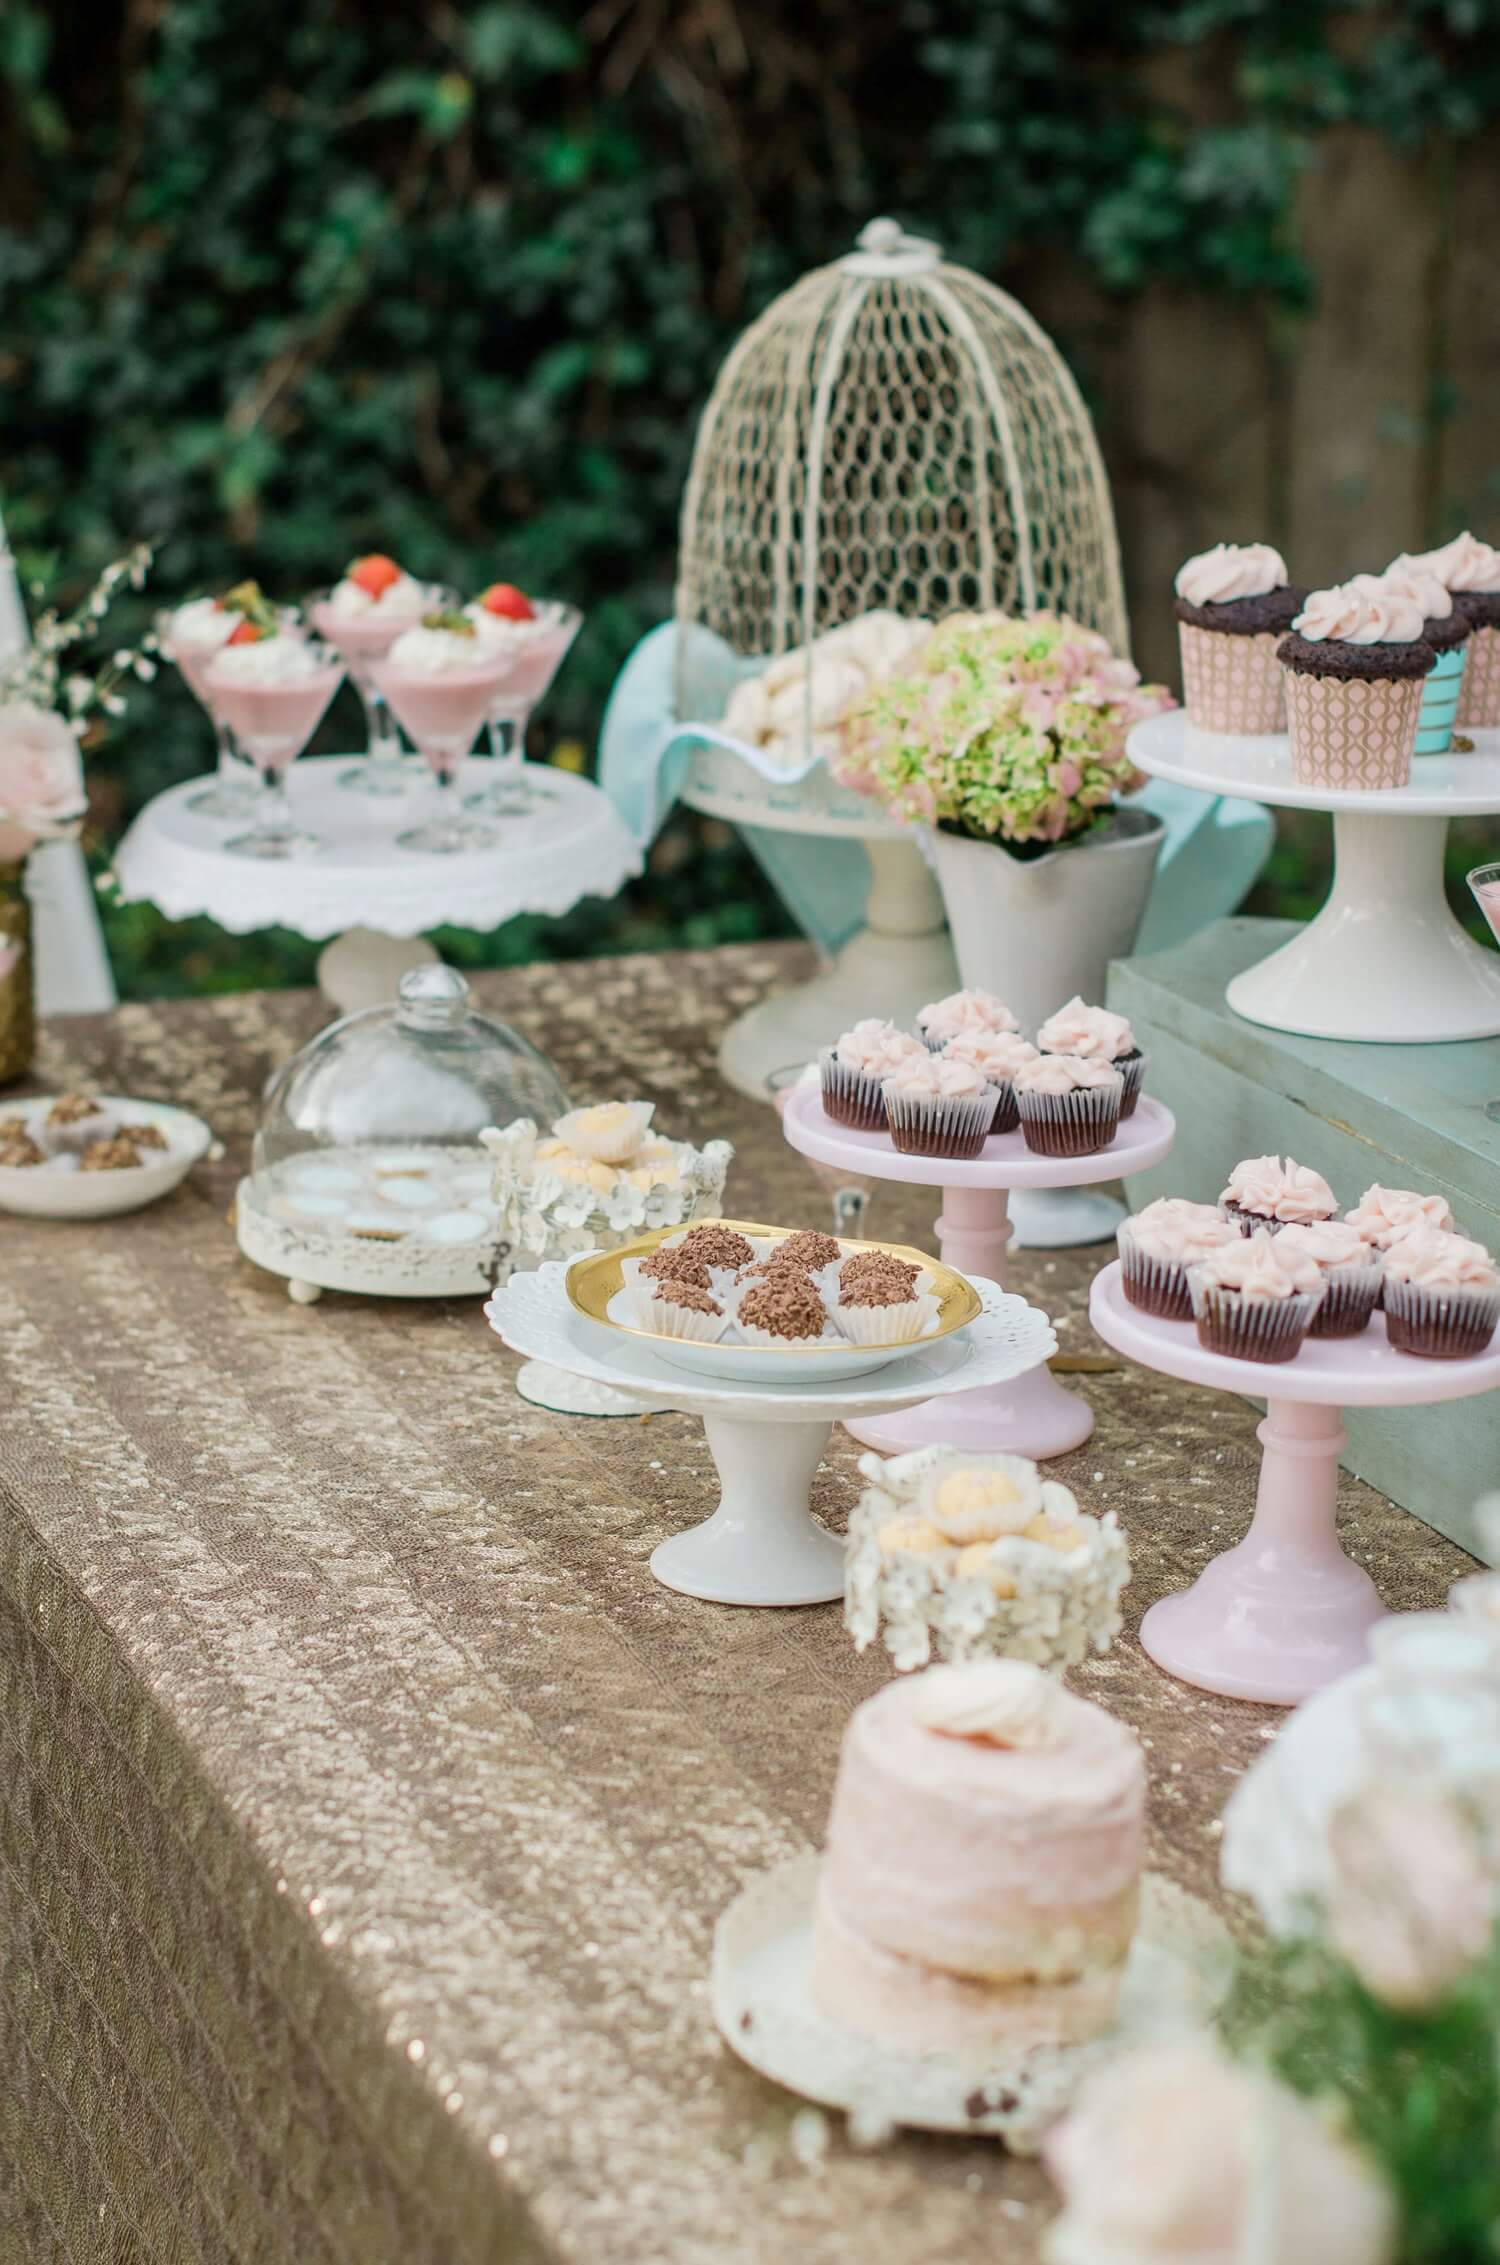 Bridal Shower dessert table / Garden Bridal / Shabby Chic Bridal Shower idea / Baby Shower party ideas and decor / Bridal Shower desserts / Baby Shower desserts ideas / Shabby Chic dessert table ideas / Style by Carolina from MINT Event Design / www.minteventdesign.com